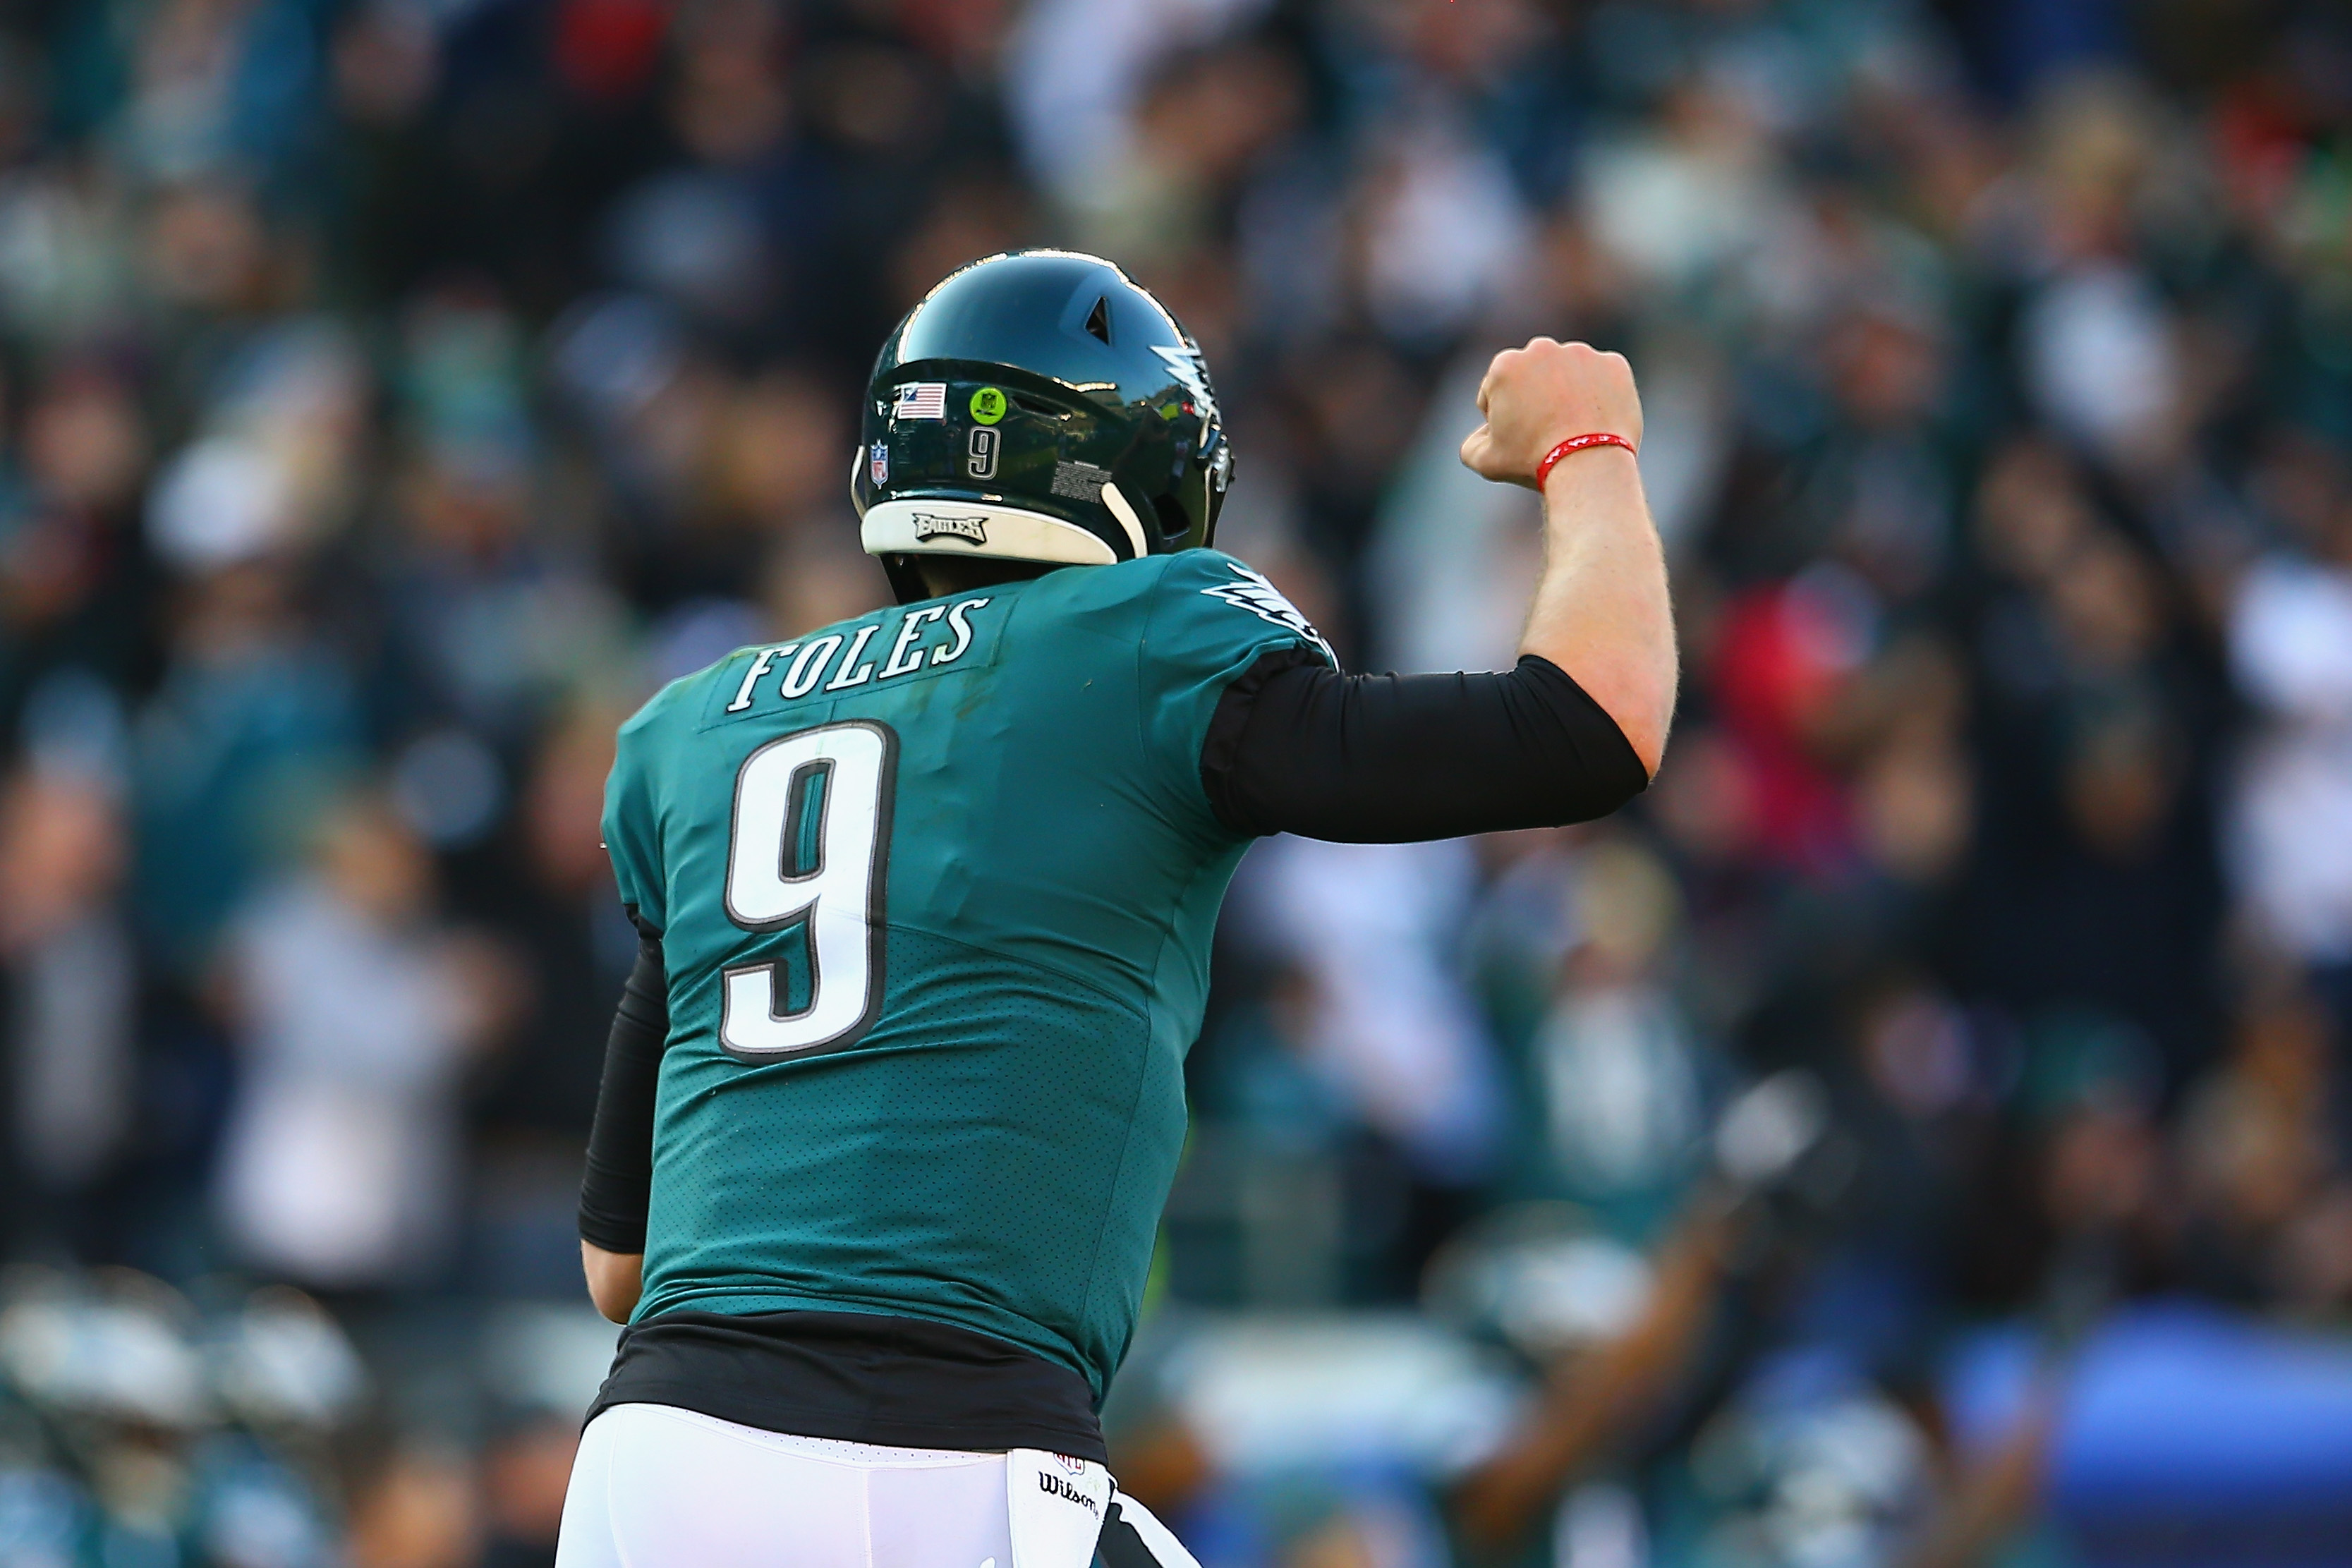 f2d139f0 My Heart Said Philly': Nick Foles Writes Thank You Letter To ...